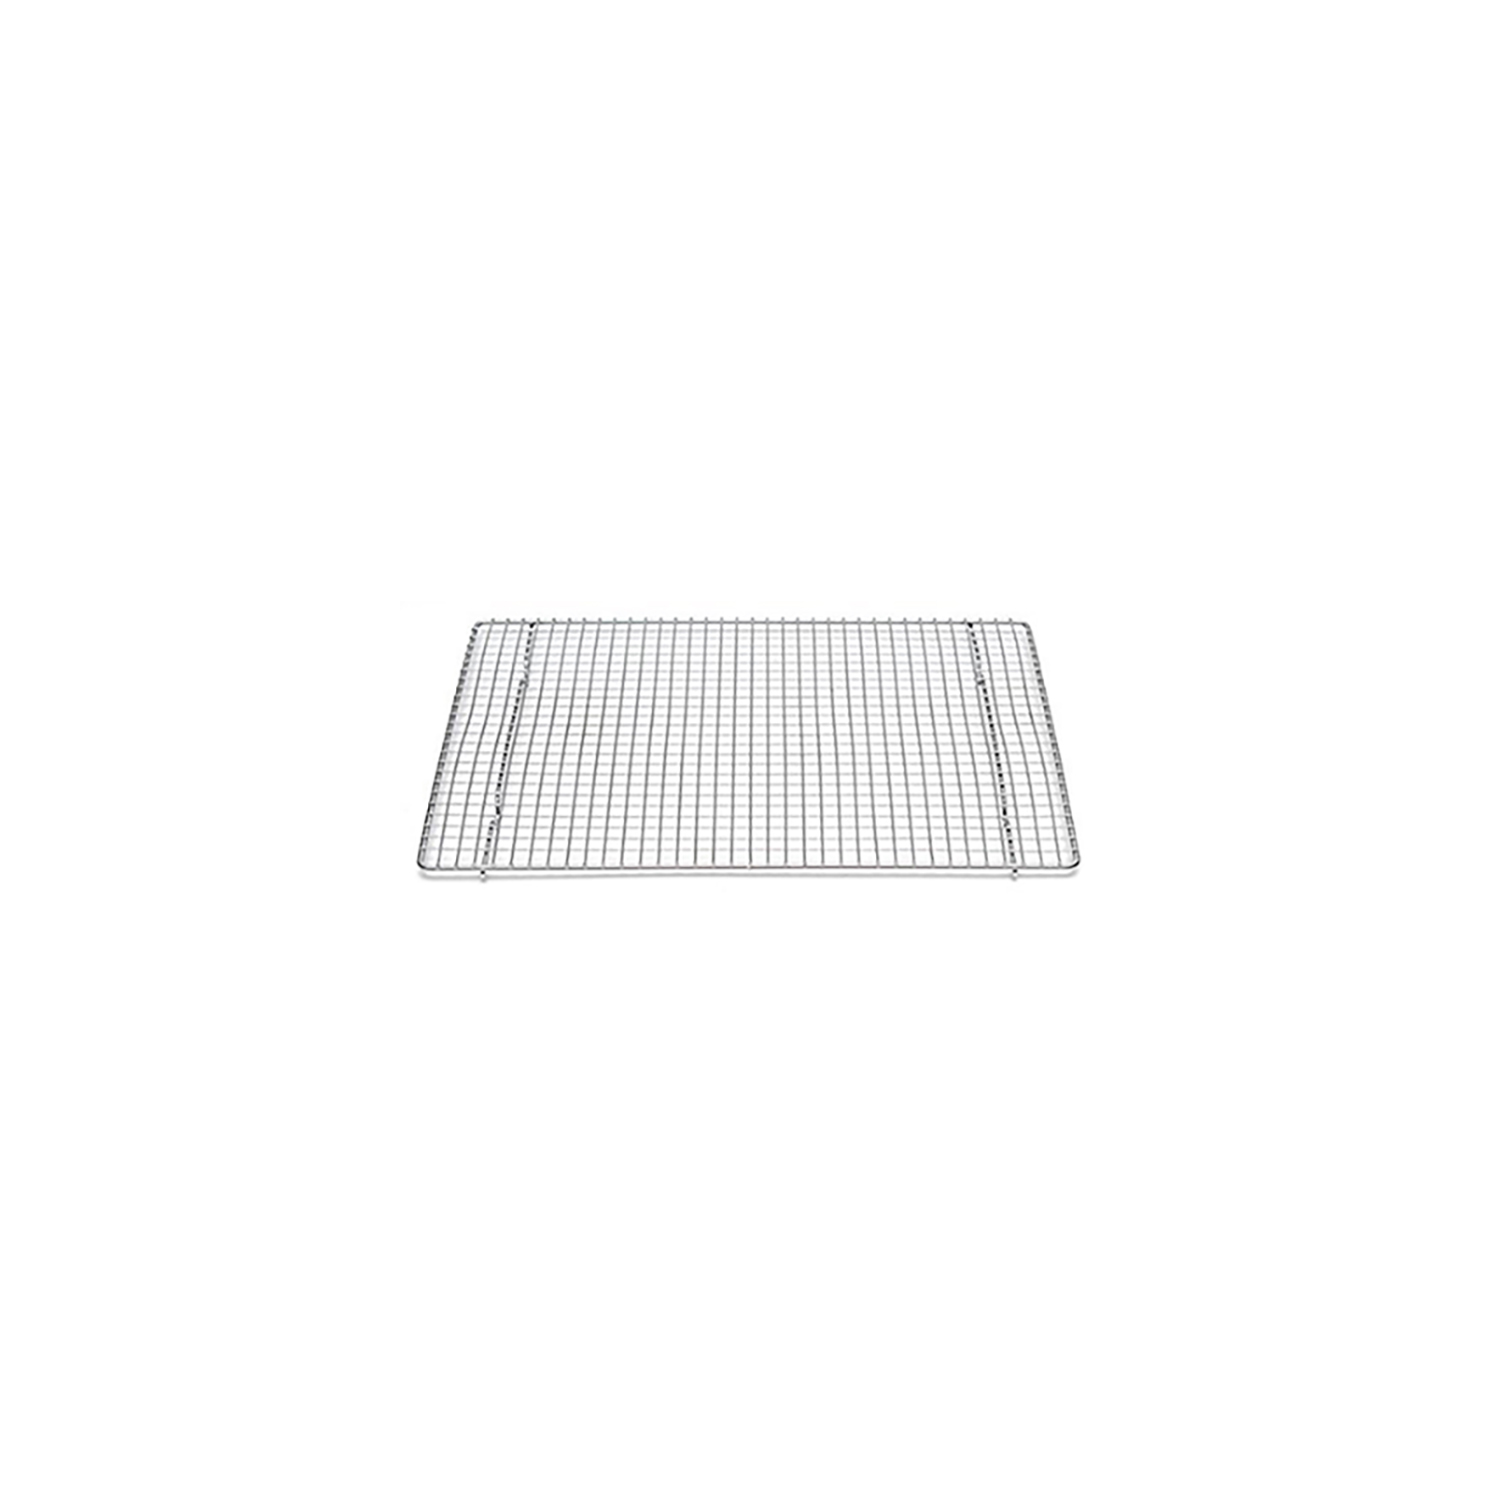 Libertyware Professional Cross Wire Cooling Rack